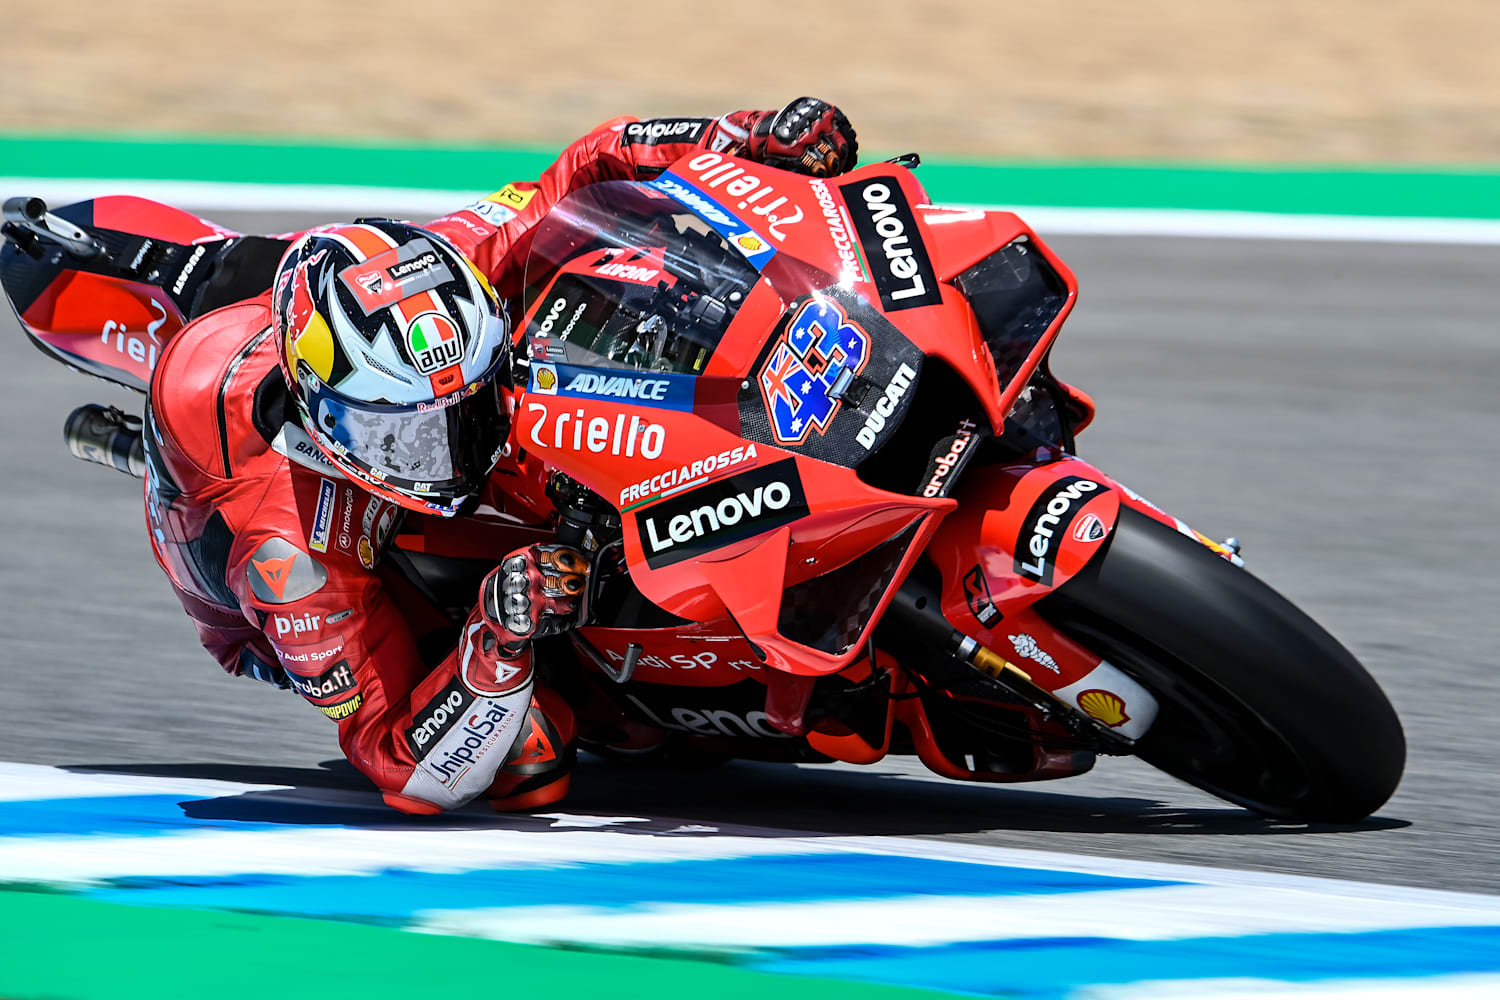 Japan MotoGP Qualifying Results: Marquez completes full